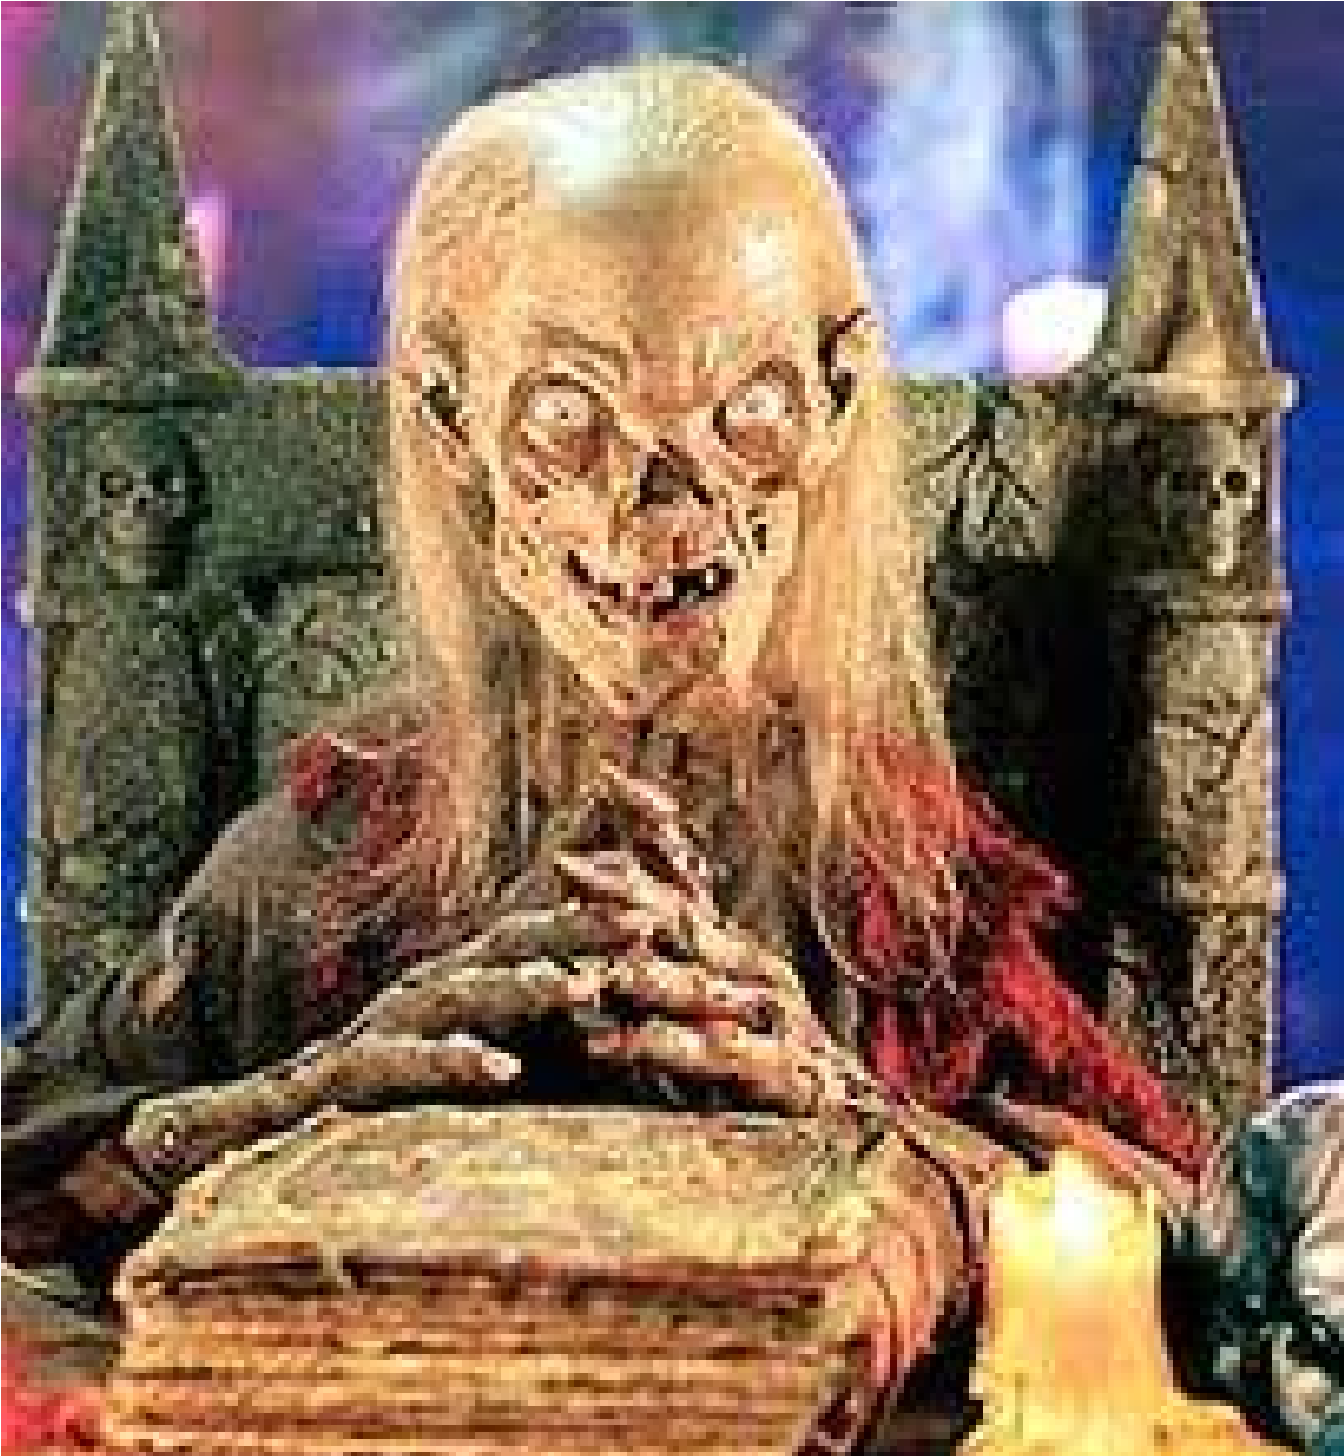 Tales From The Crypt Keeper | The CryptKeeper - Tales From the Crypt Wiki